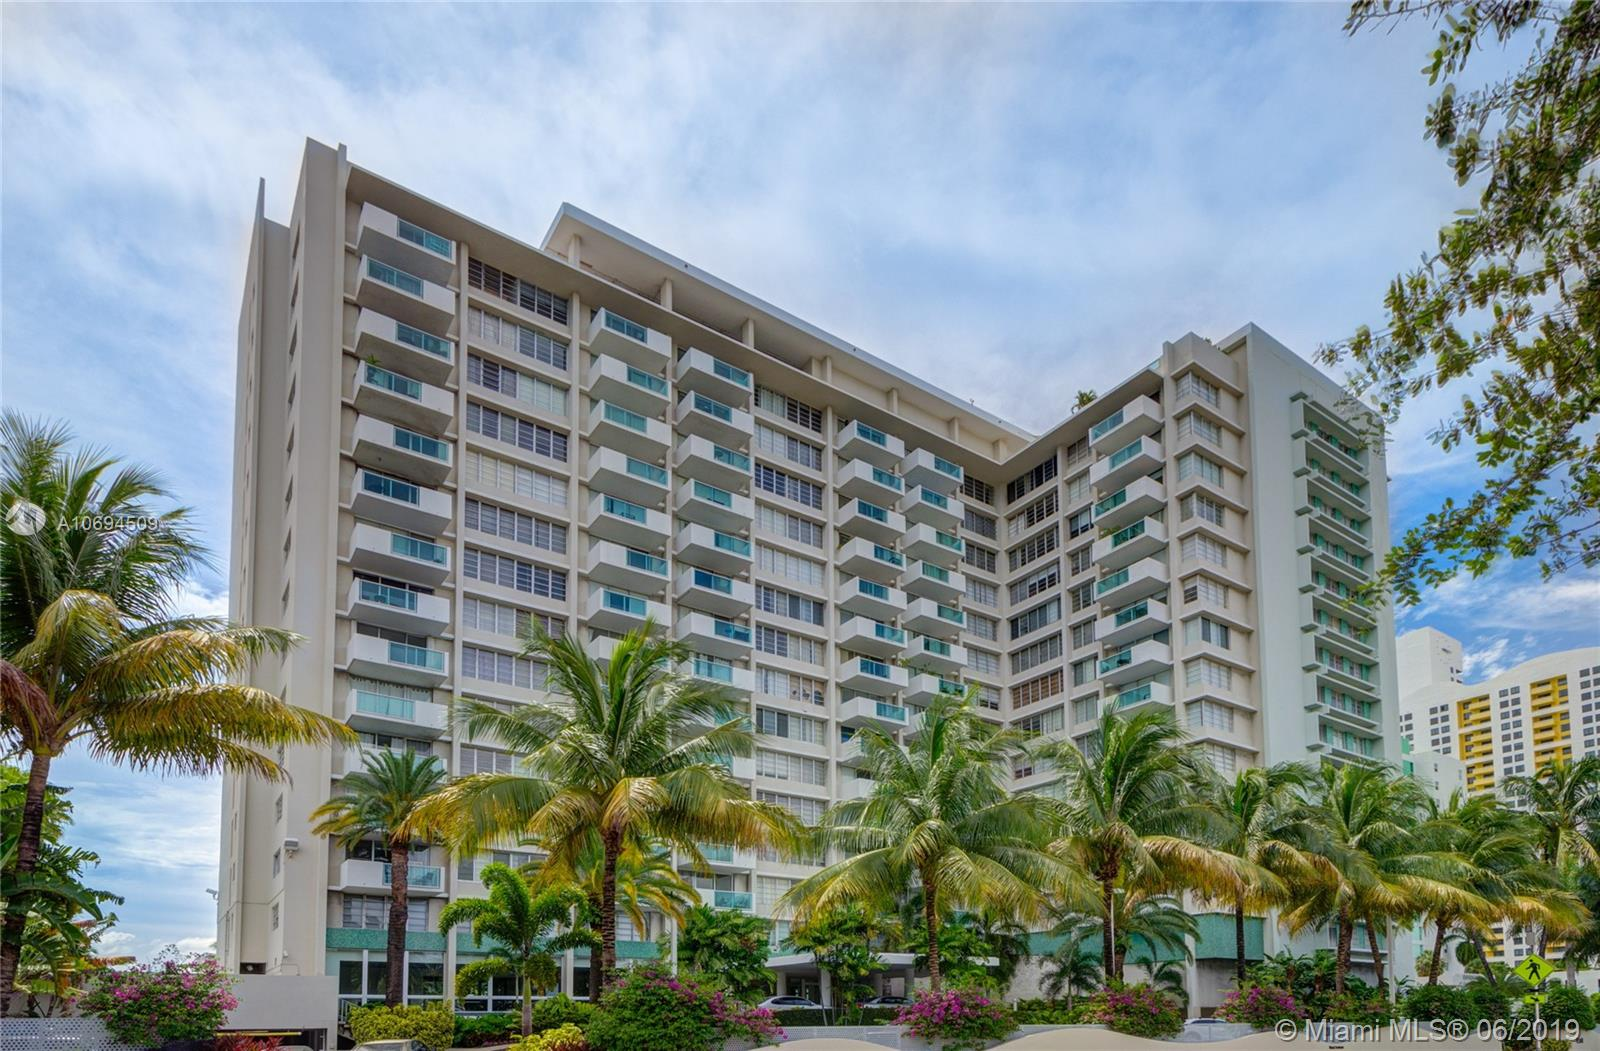 Very bright and spacious unit with a large open balcony. Nice views of the ocean and Miami Beach Skyline. The Mirador is a full service building with heated pool, convenience store, BBQ area, spa, and hair salon. Building has 24 hrs concierge and security, fitness center, sauna, cable & internet. Walking distance to restaurants, Whole Foods, Lincoln Rd, Ocean Drive & South Beach.